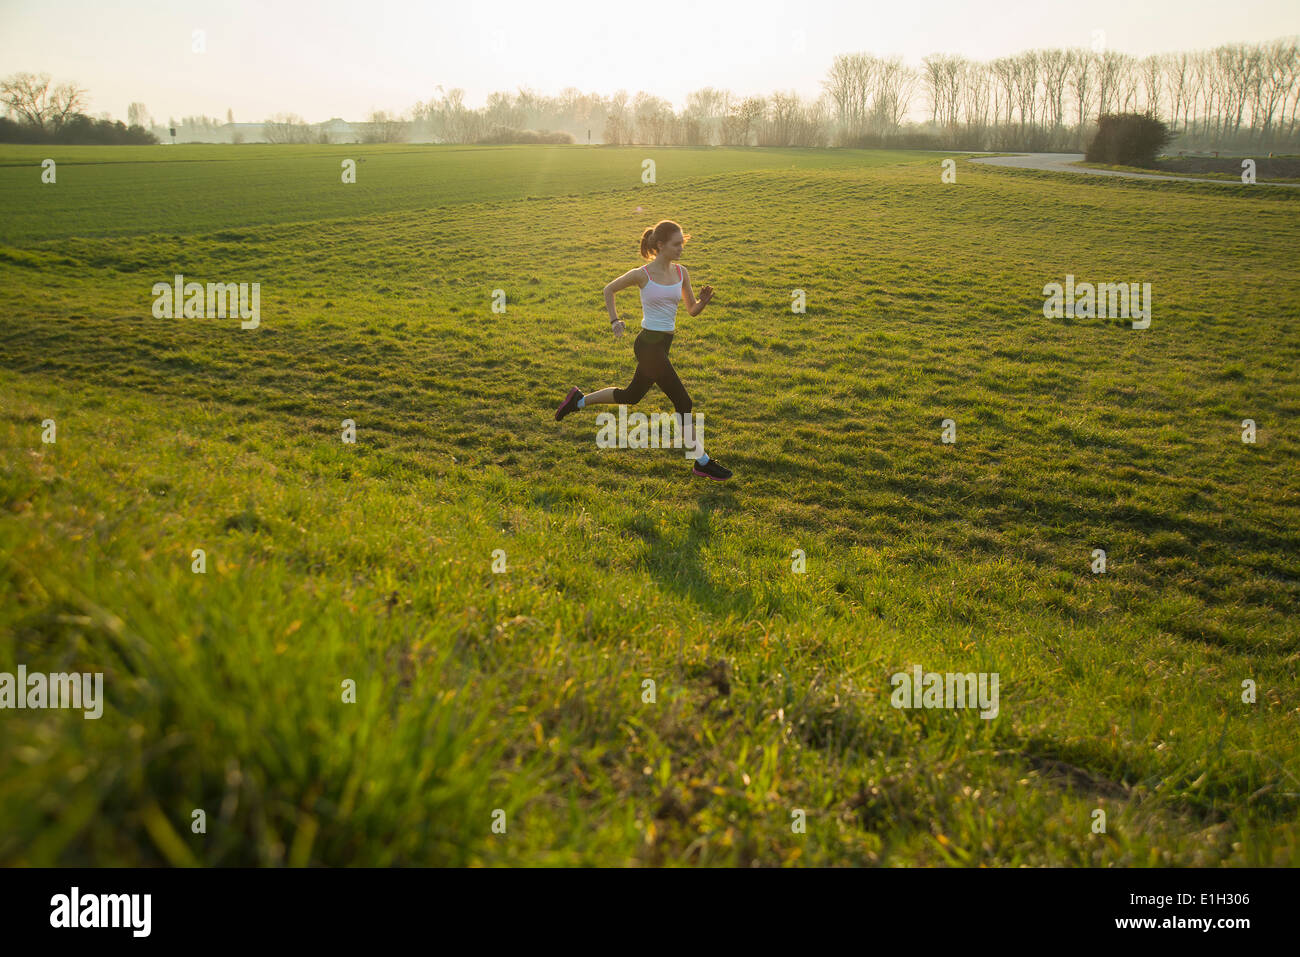 Young female runner in hilly field - Stock Image